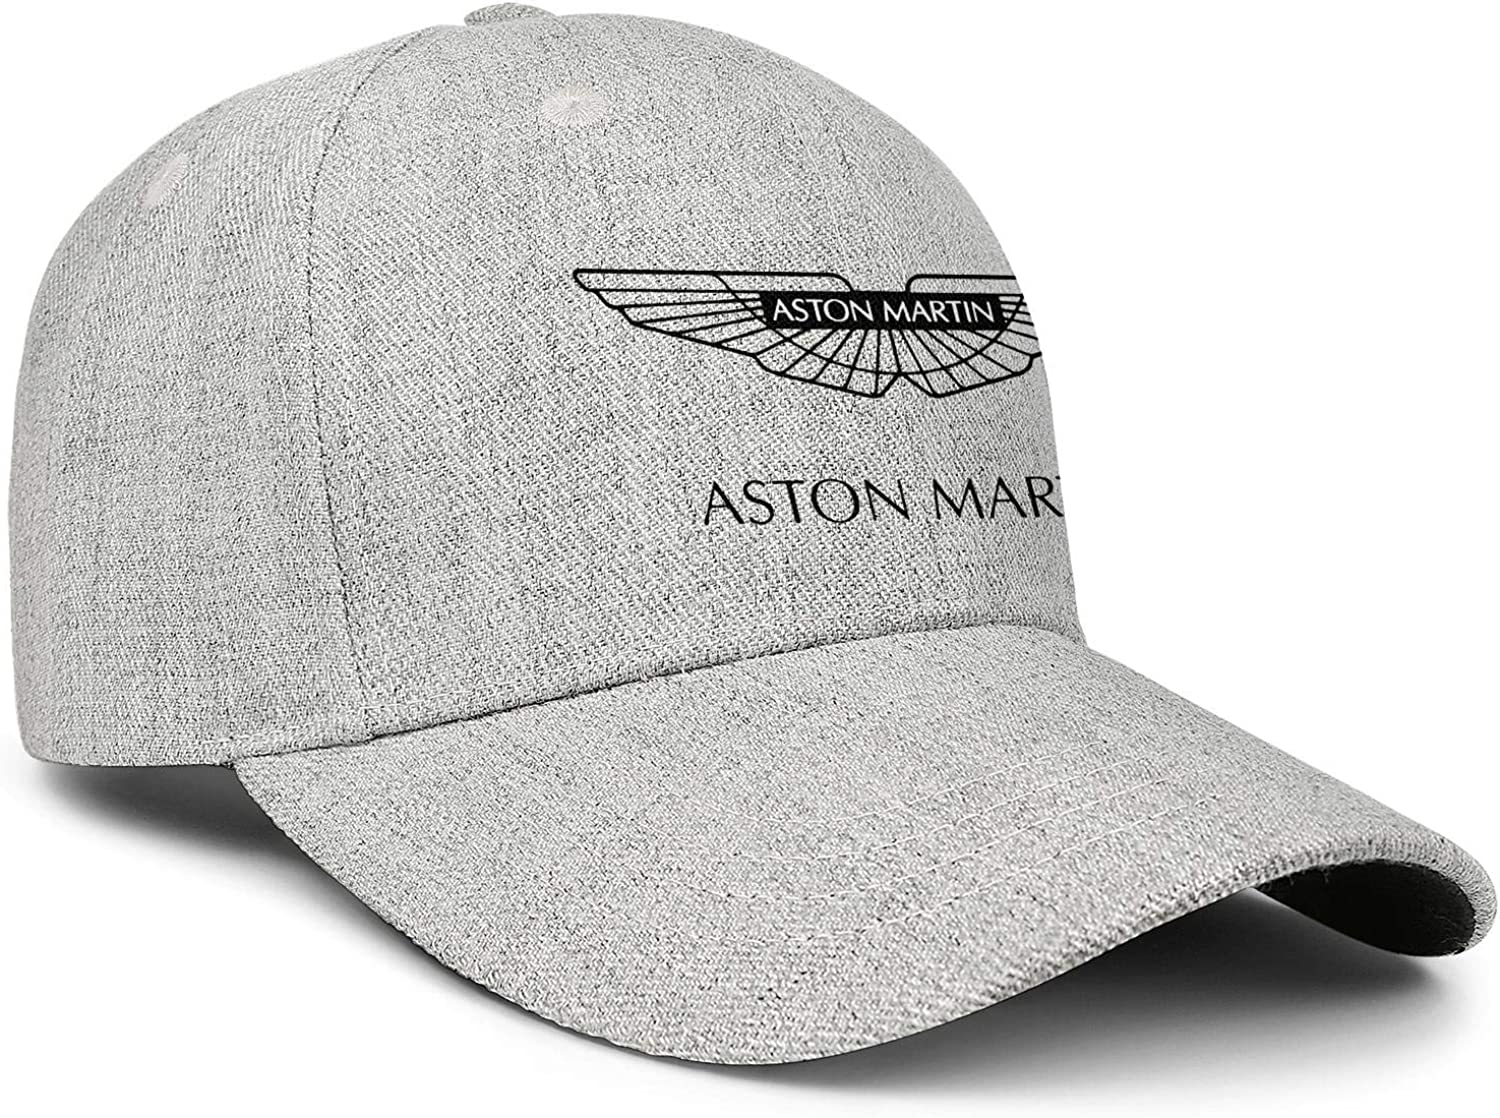 All Cotton Grey Baseball Caps Aston-Martin Snapback Printed Hats